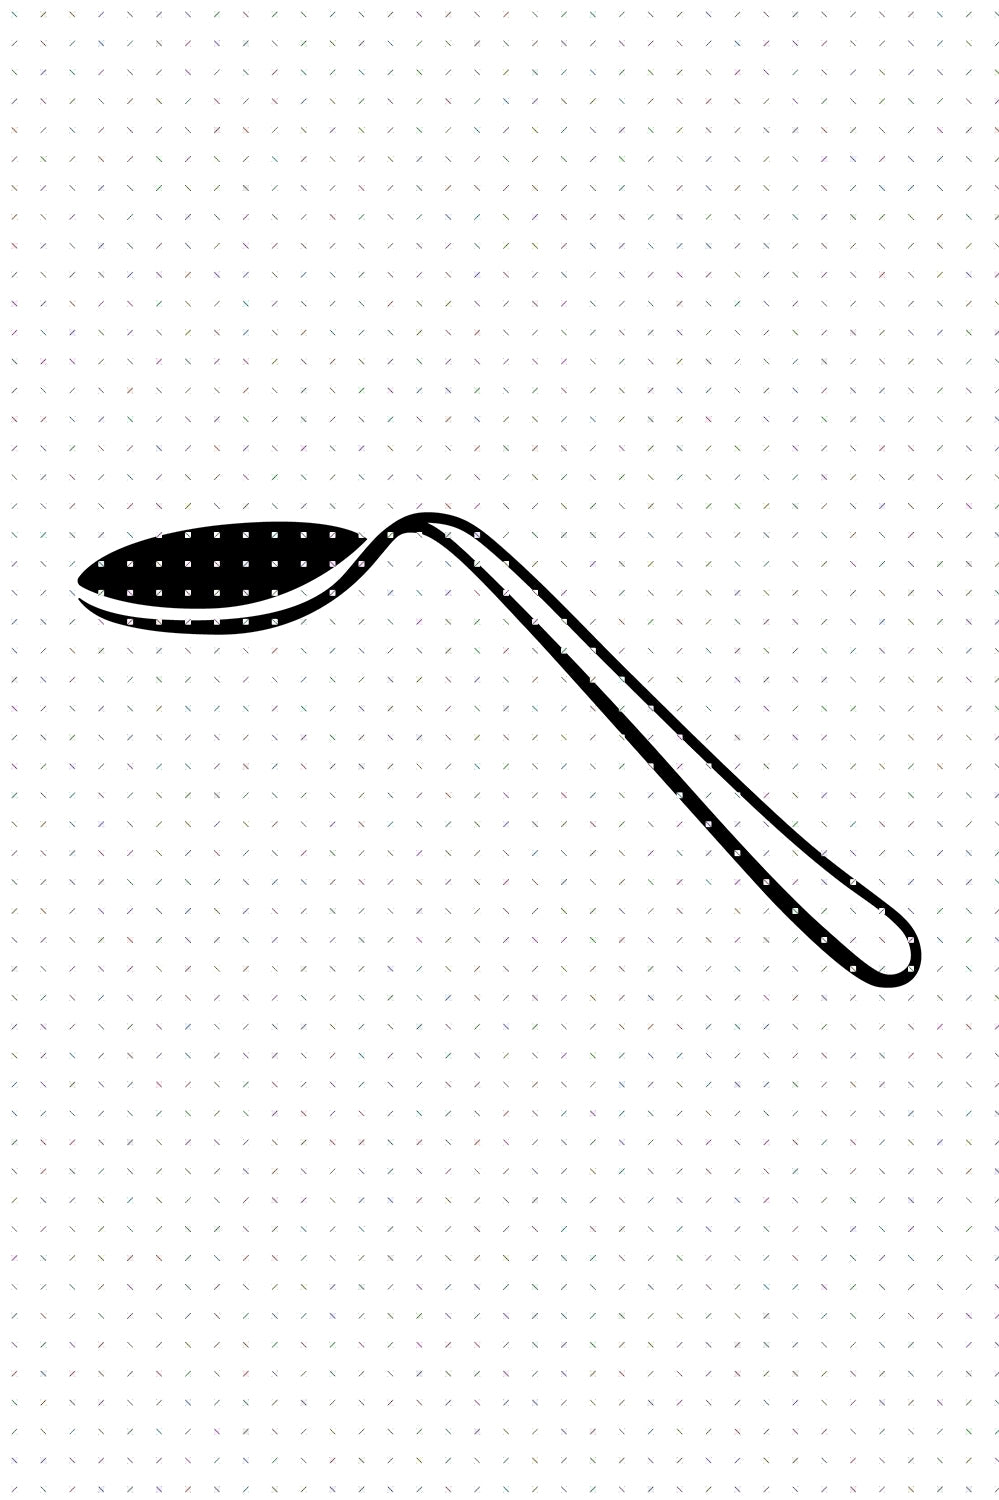 FREE bent spoon for Personal Use SVG, spoon bending PNG clipart, DXF, clipart, EPS, vector cut file instant download